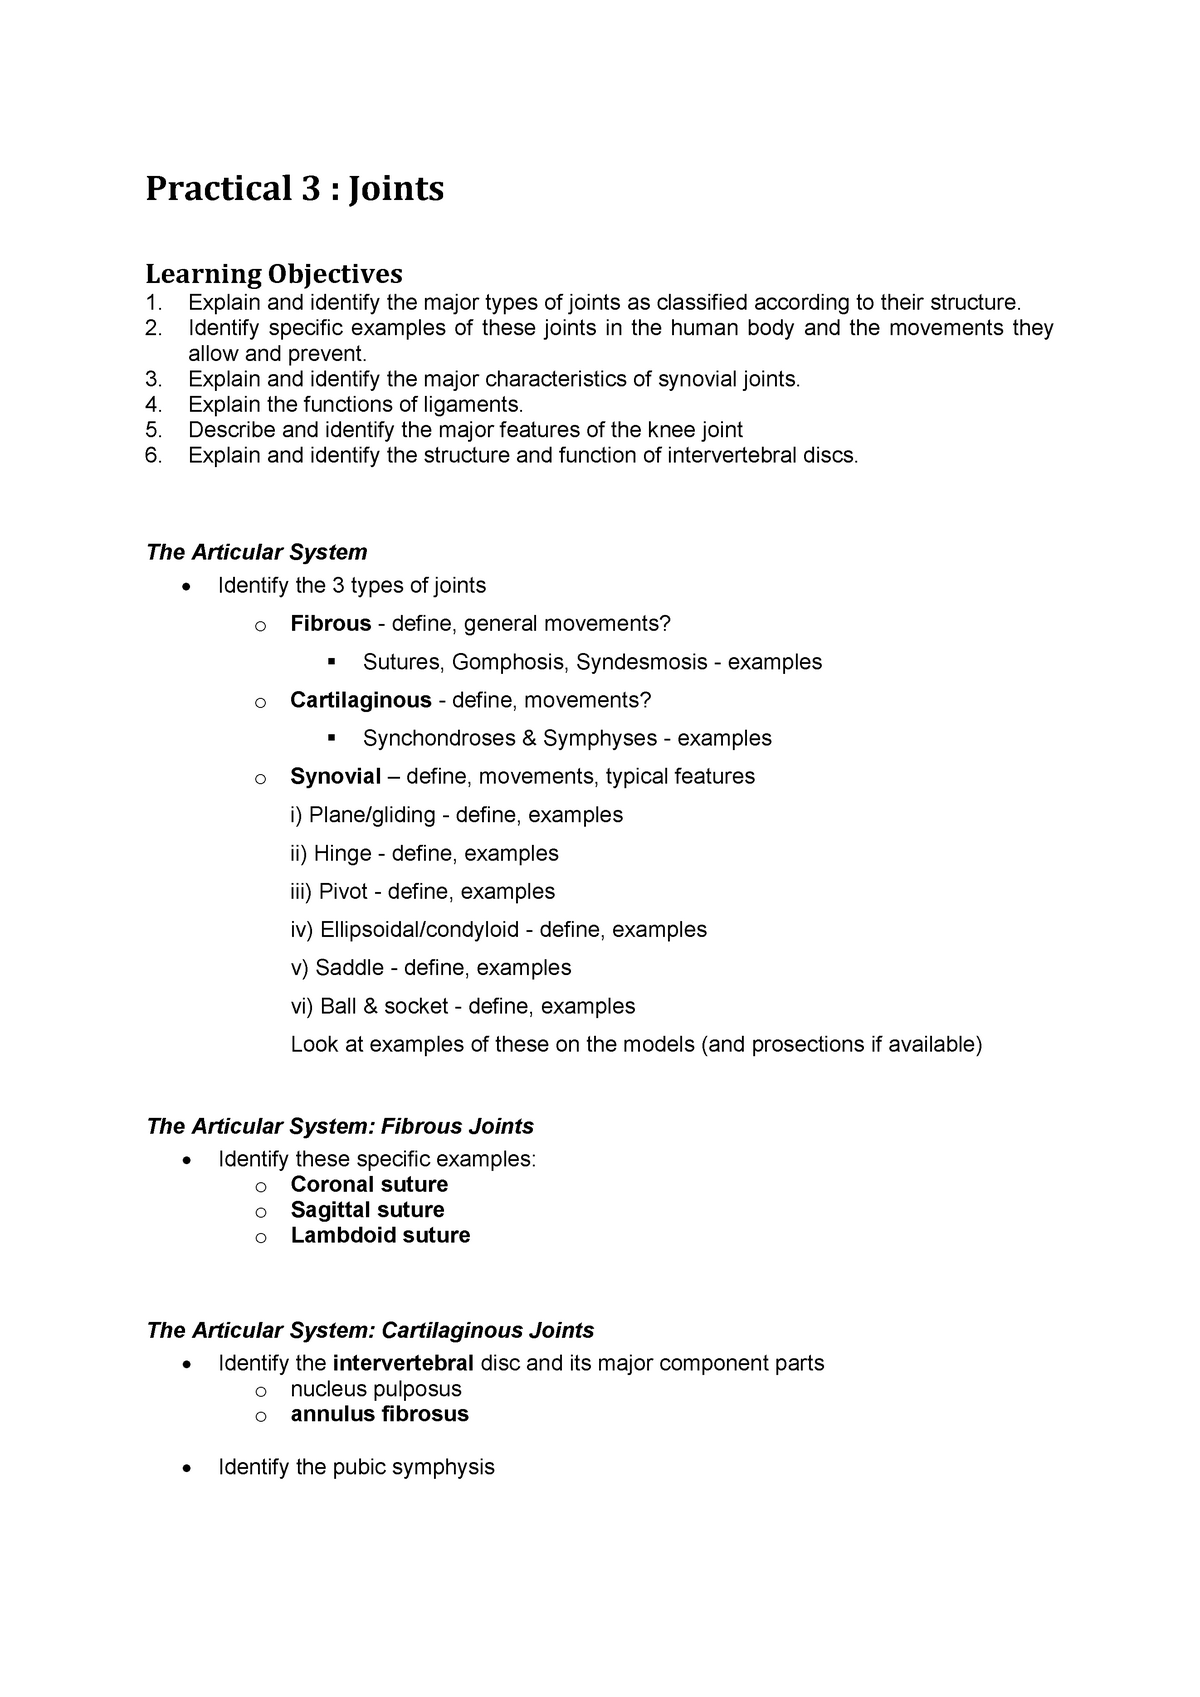 Practical 3 Self Review Worksheet Studocu The epiphyseal plate is an example of a ___ joint and later fuses to become a ___ joint. practical 3 self review worksheet